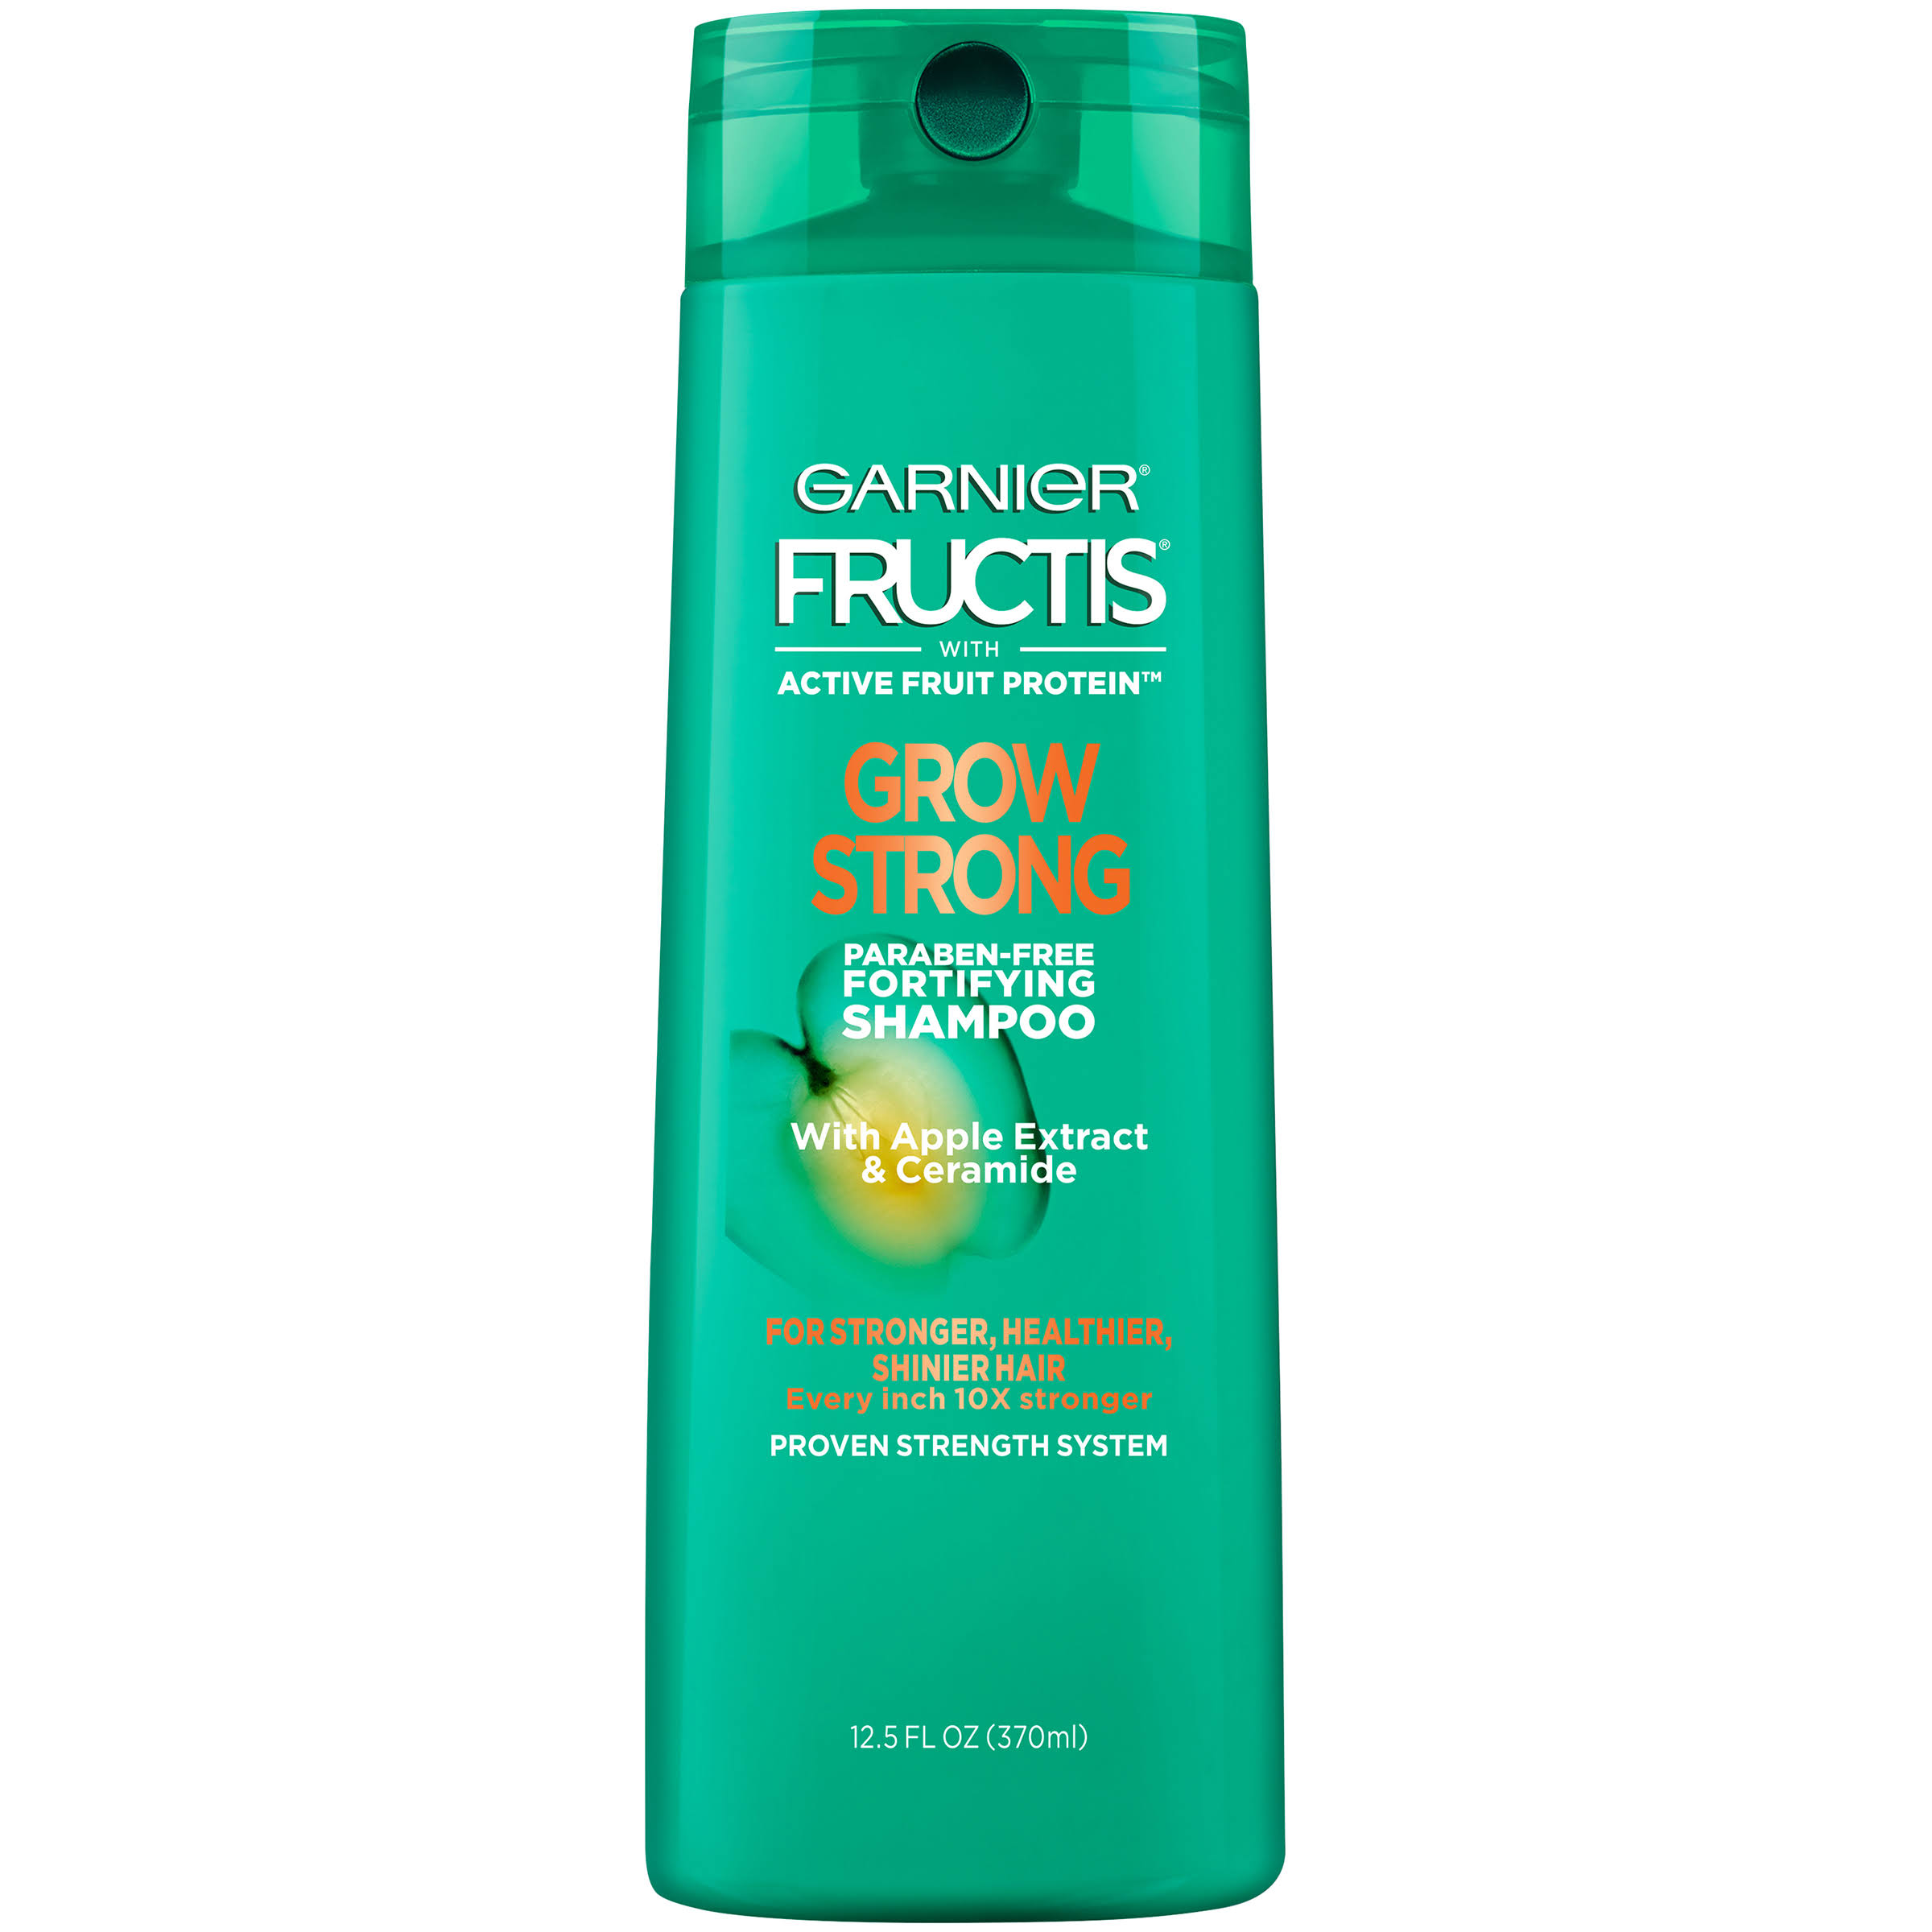 Garnier Hair Care Fructis Grow Strong Shampoo - 12.5oz